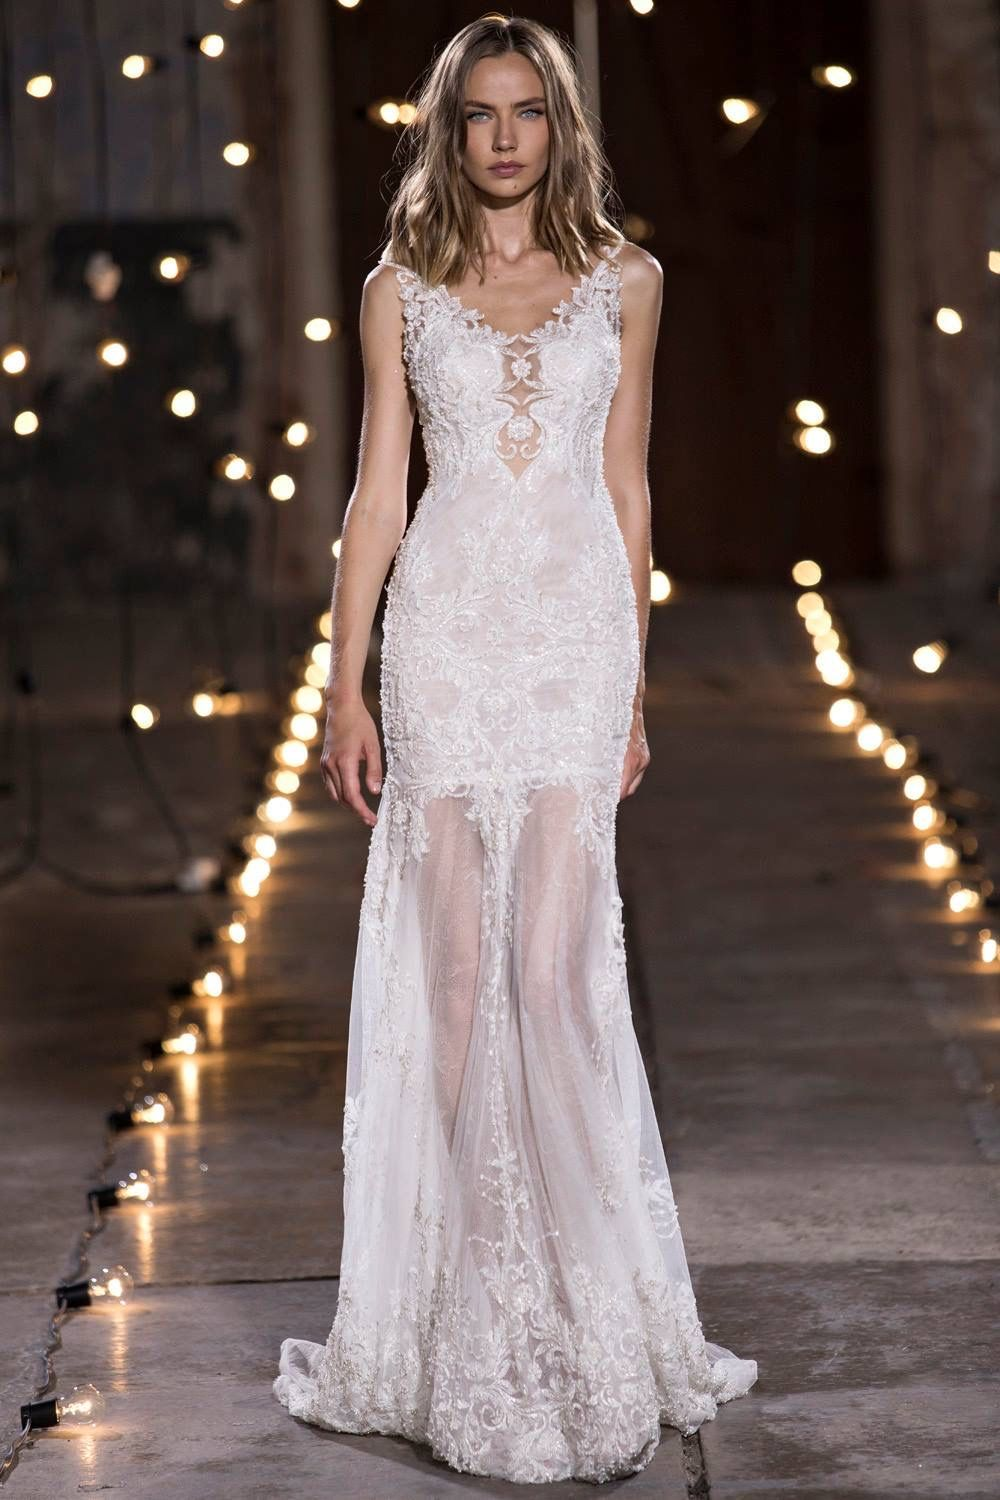 Nurit hen stardust bridal couture collection at the altar